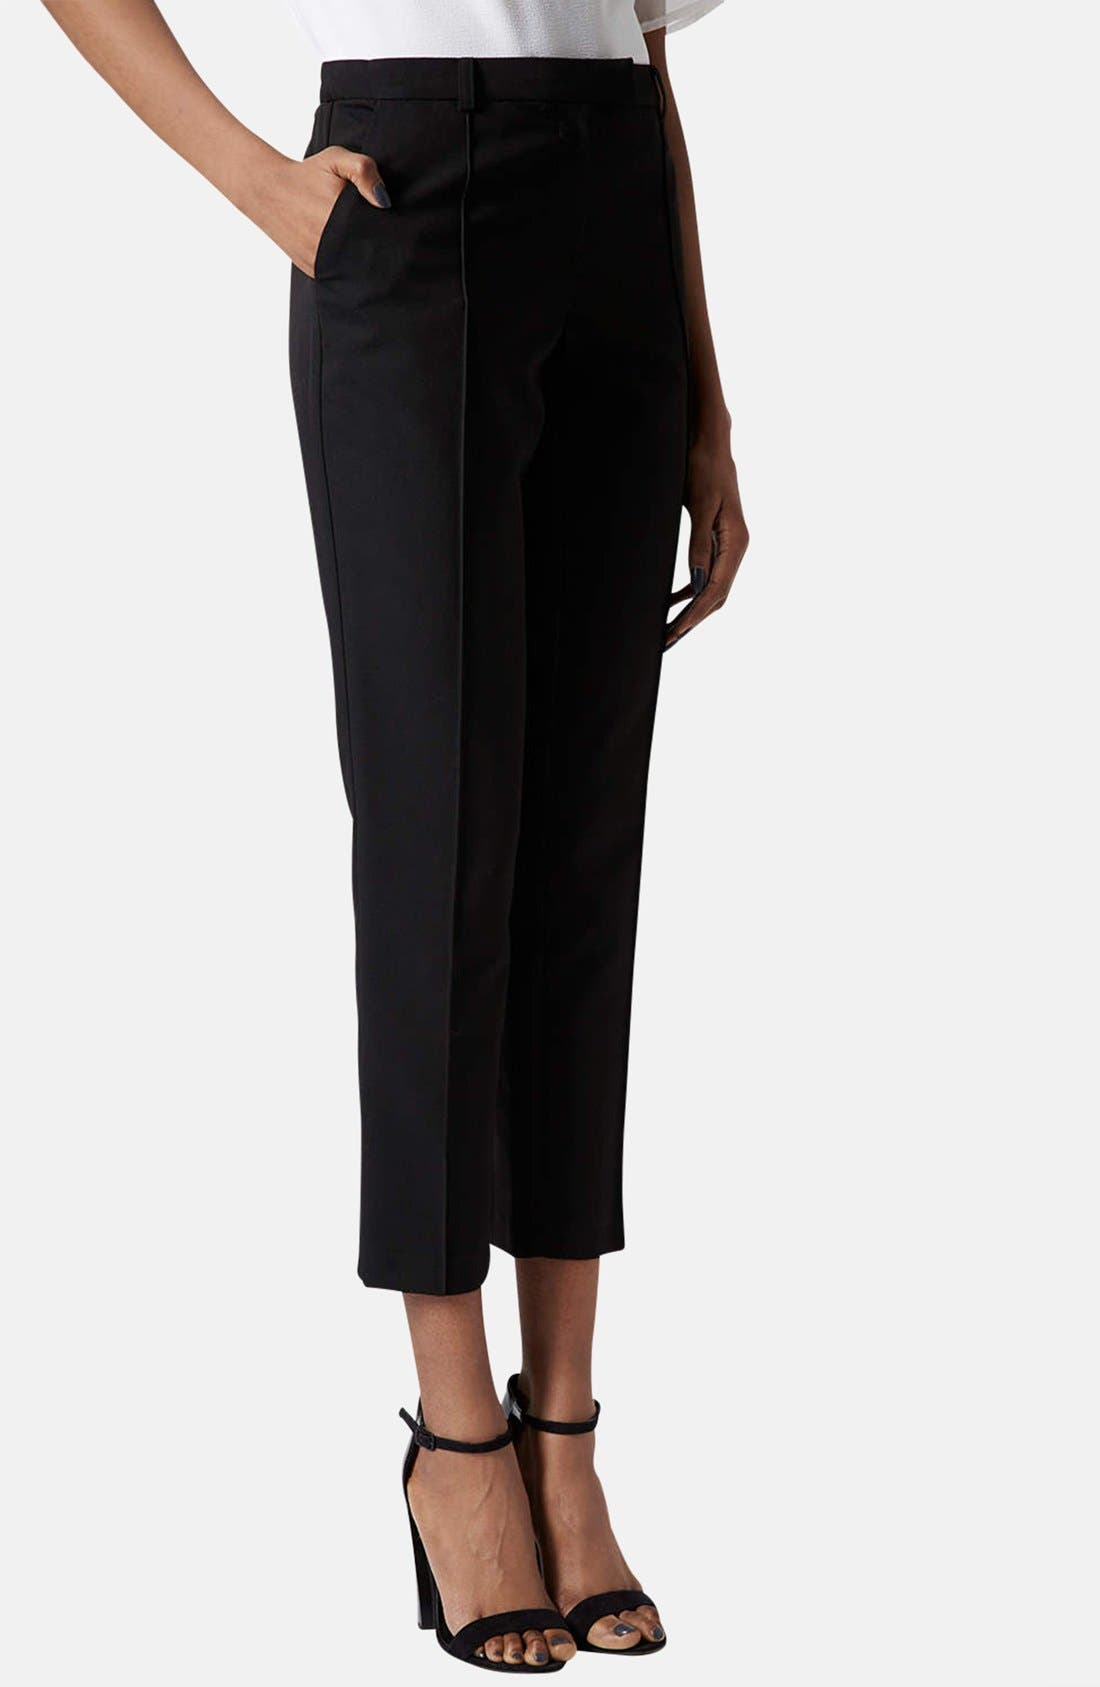 Alternate Image 1 Selected - Topshop Crop Cigarette Pants (Regular & Short)